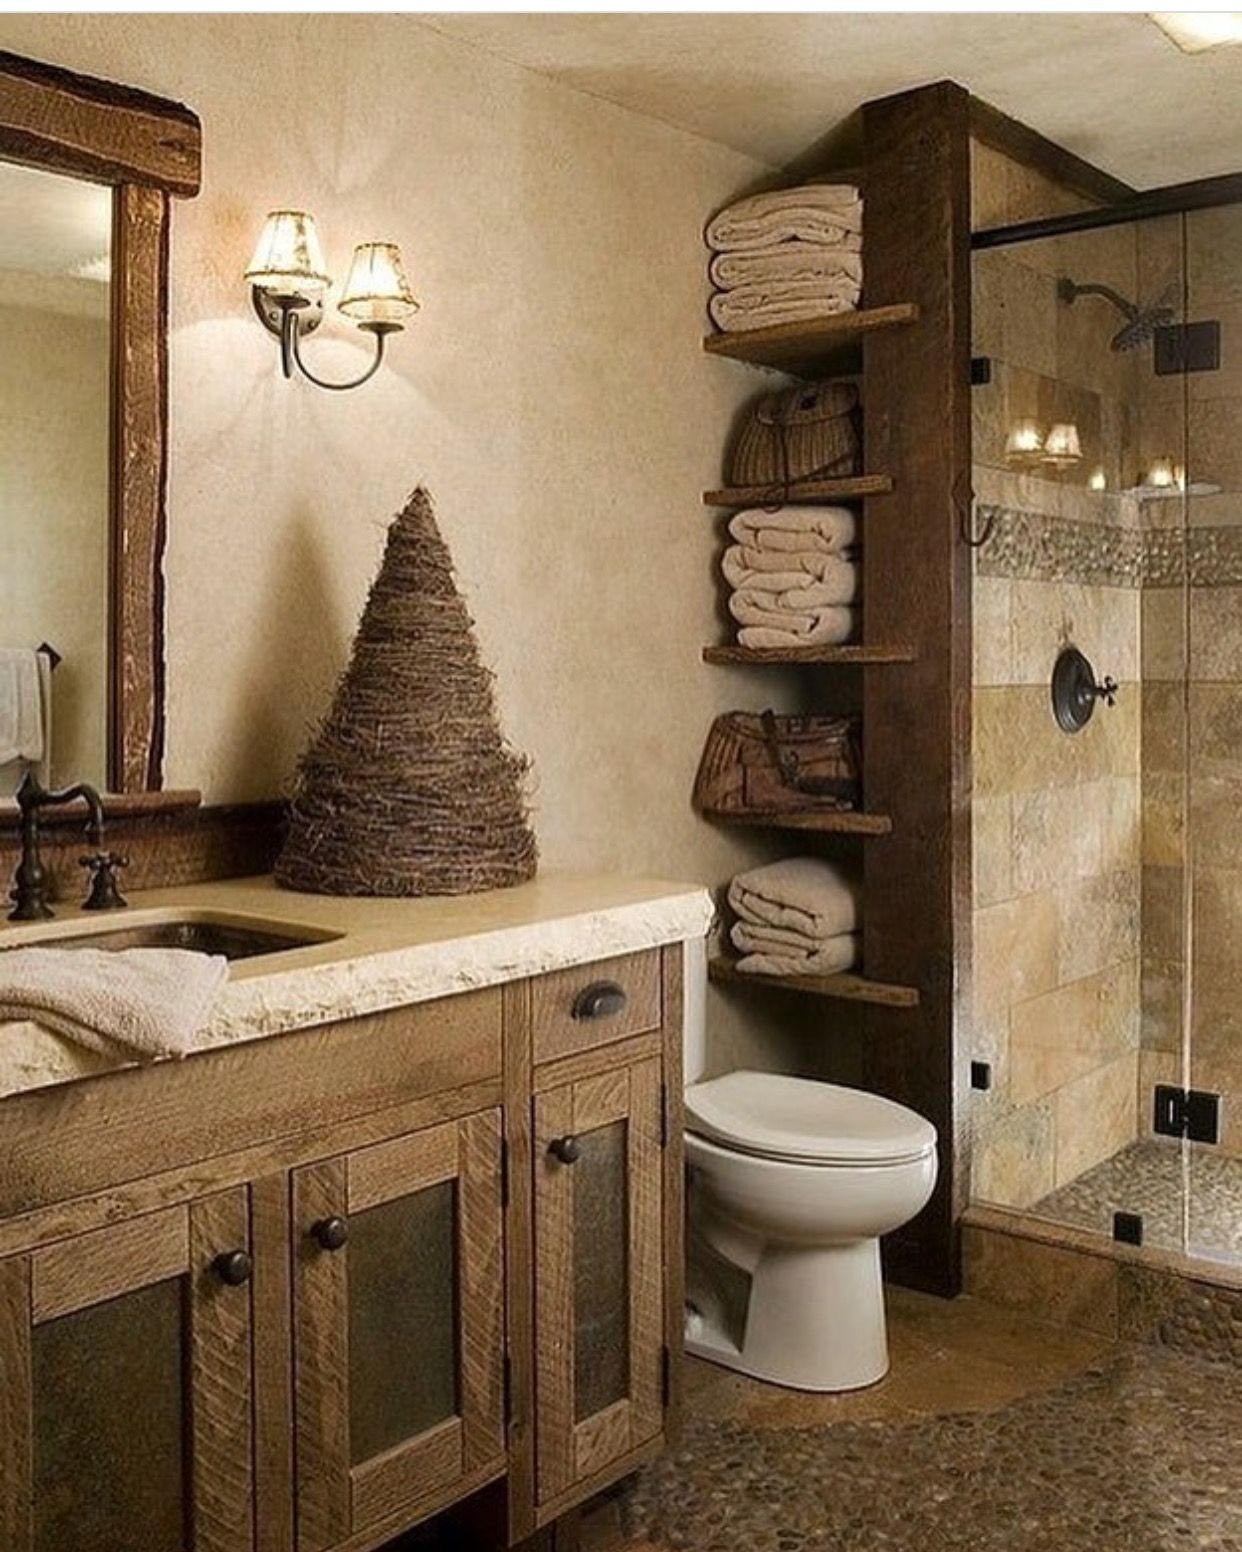 Best Kitchen Gallery: Pin By Joshua J Cadwell On Home Decor Pinterest Master Bath of Rustic Bathroom Design  on rachelxblog.com